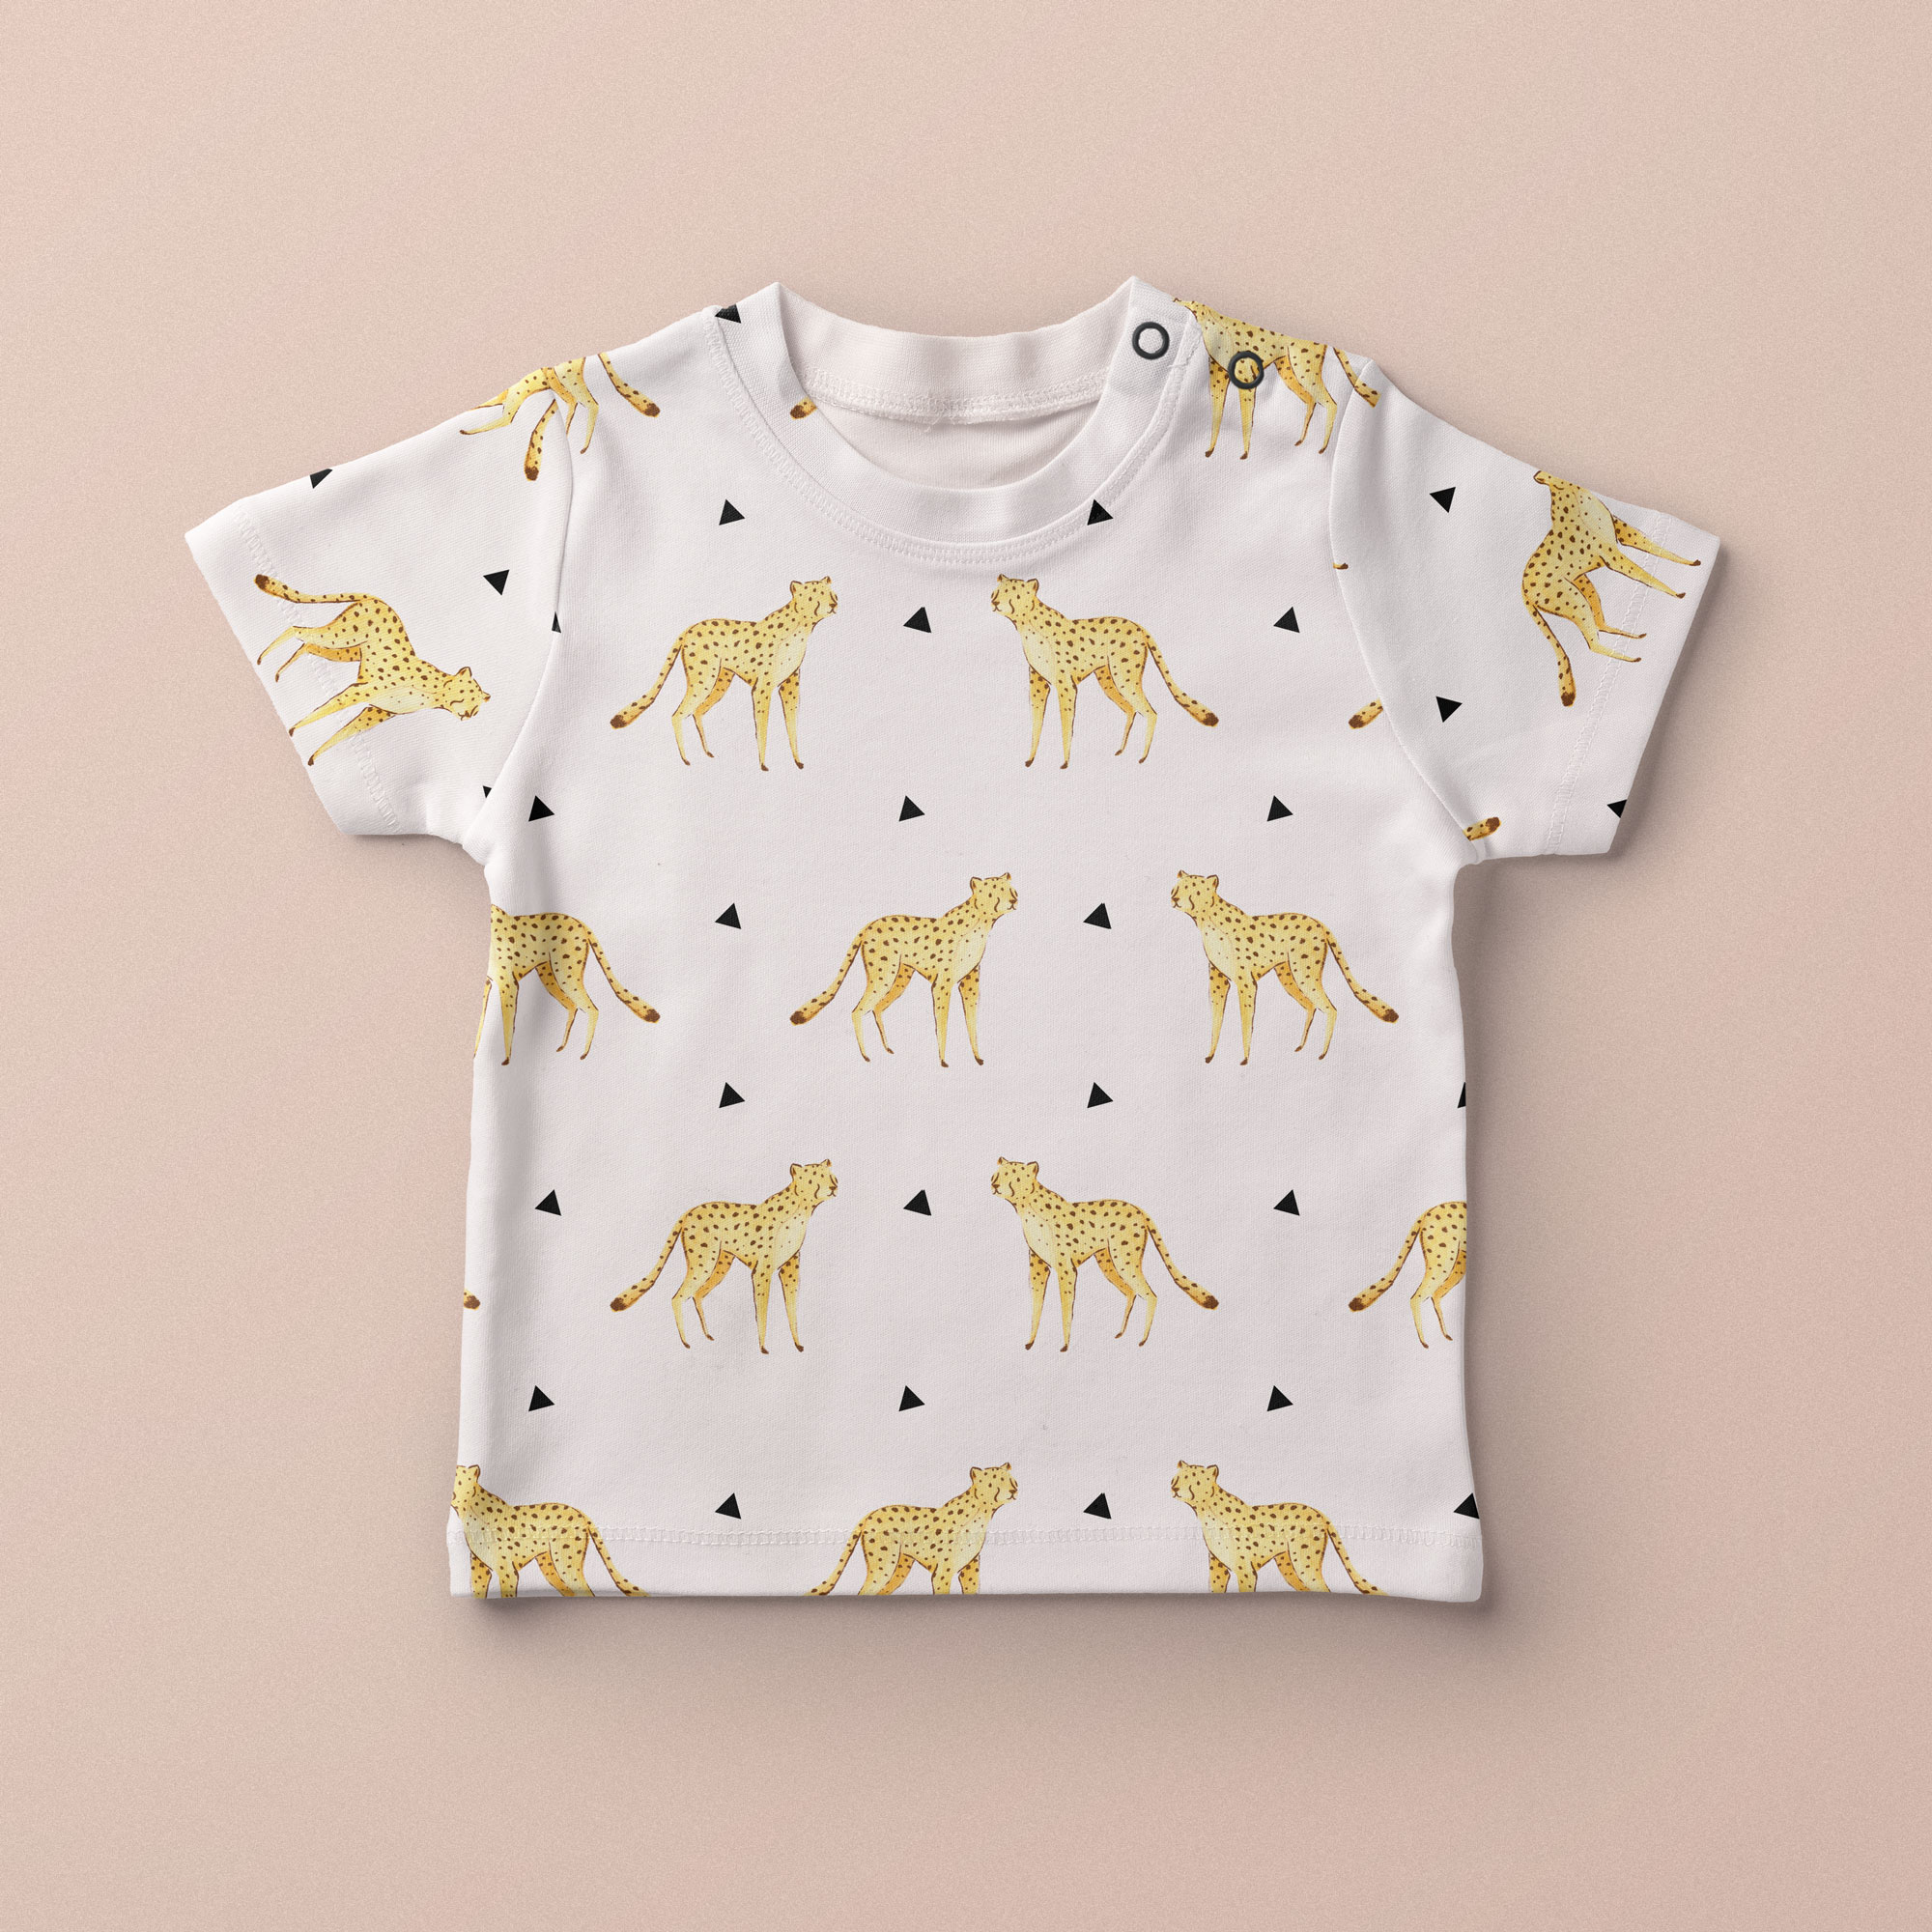 Baby Child Tshirt with Cheetah desig